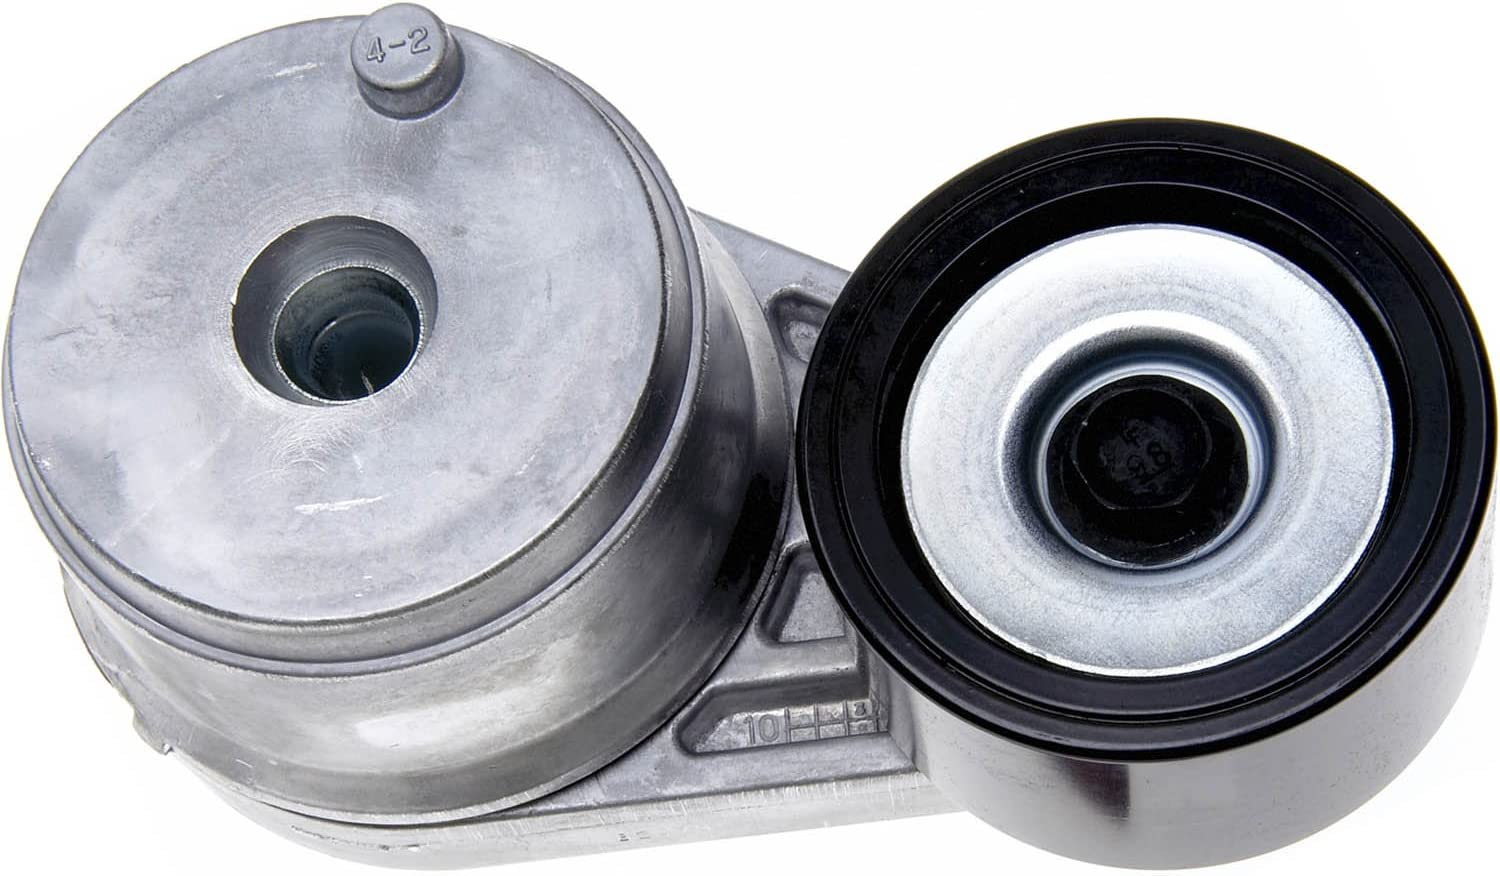 ACDelco 38503 Professional Heavy Duty Belt Tensioner and Pulley Assembly